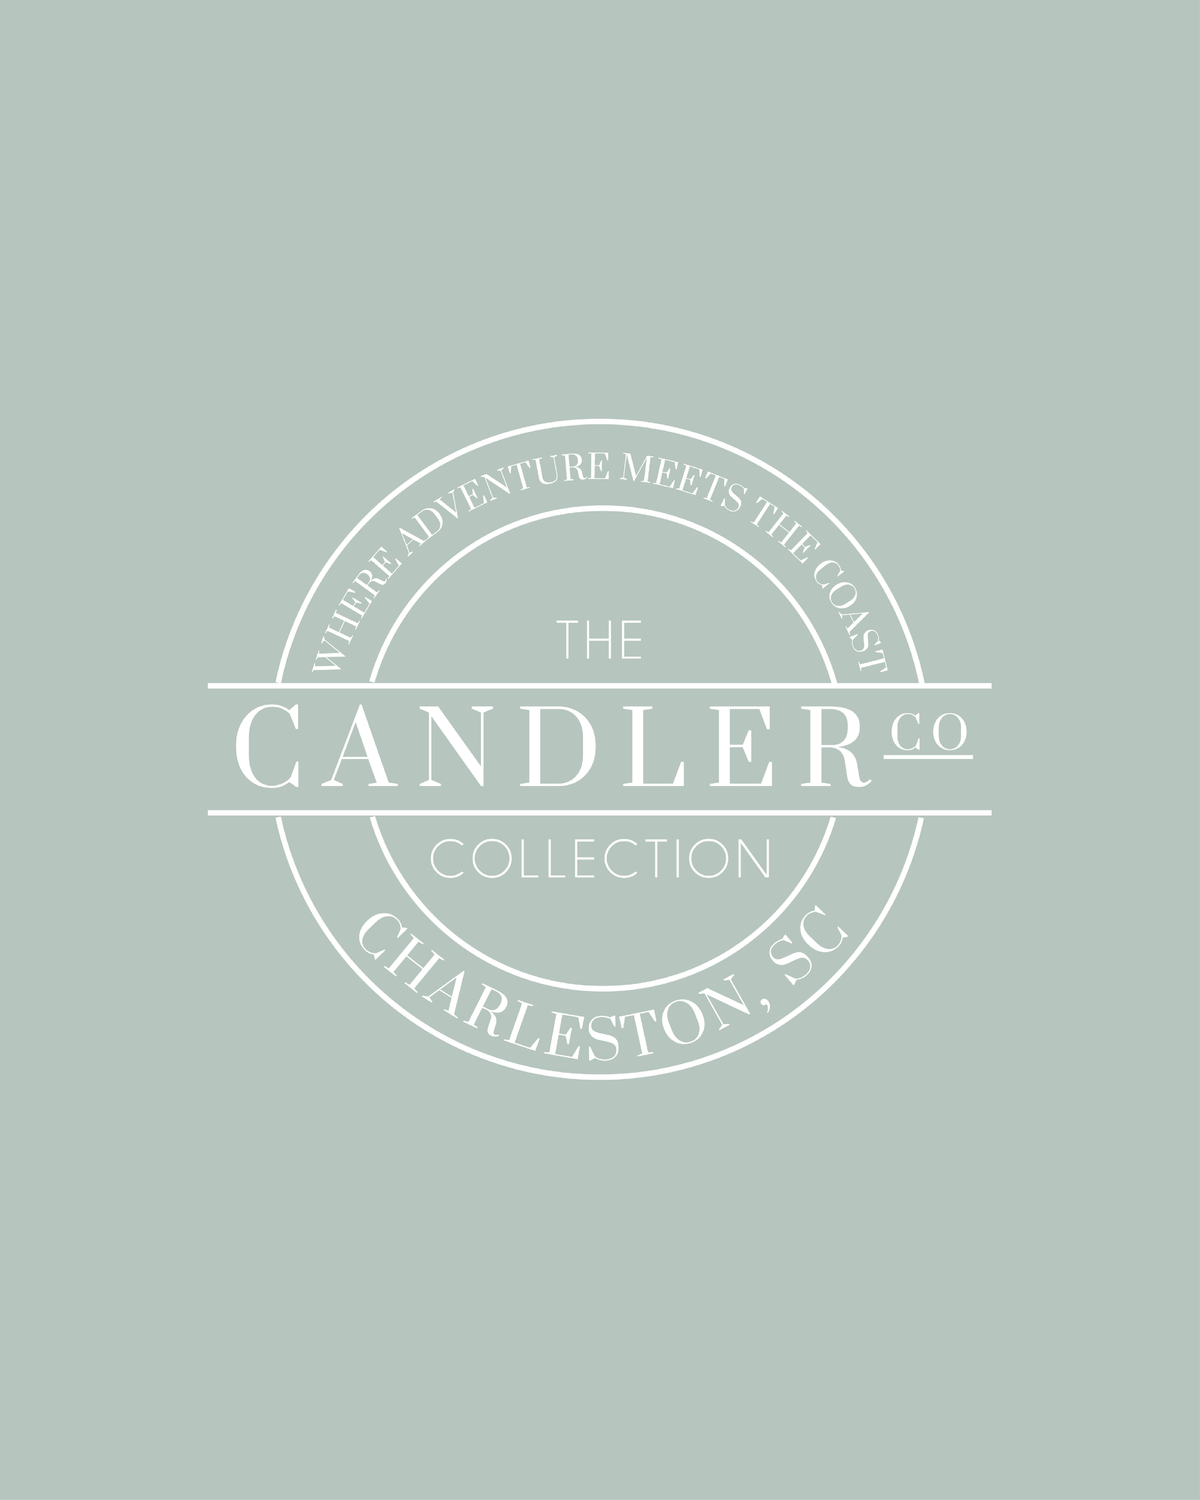 The Candler Collection Logo